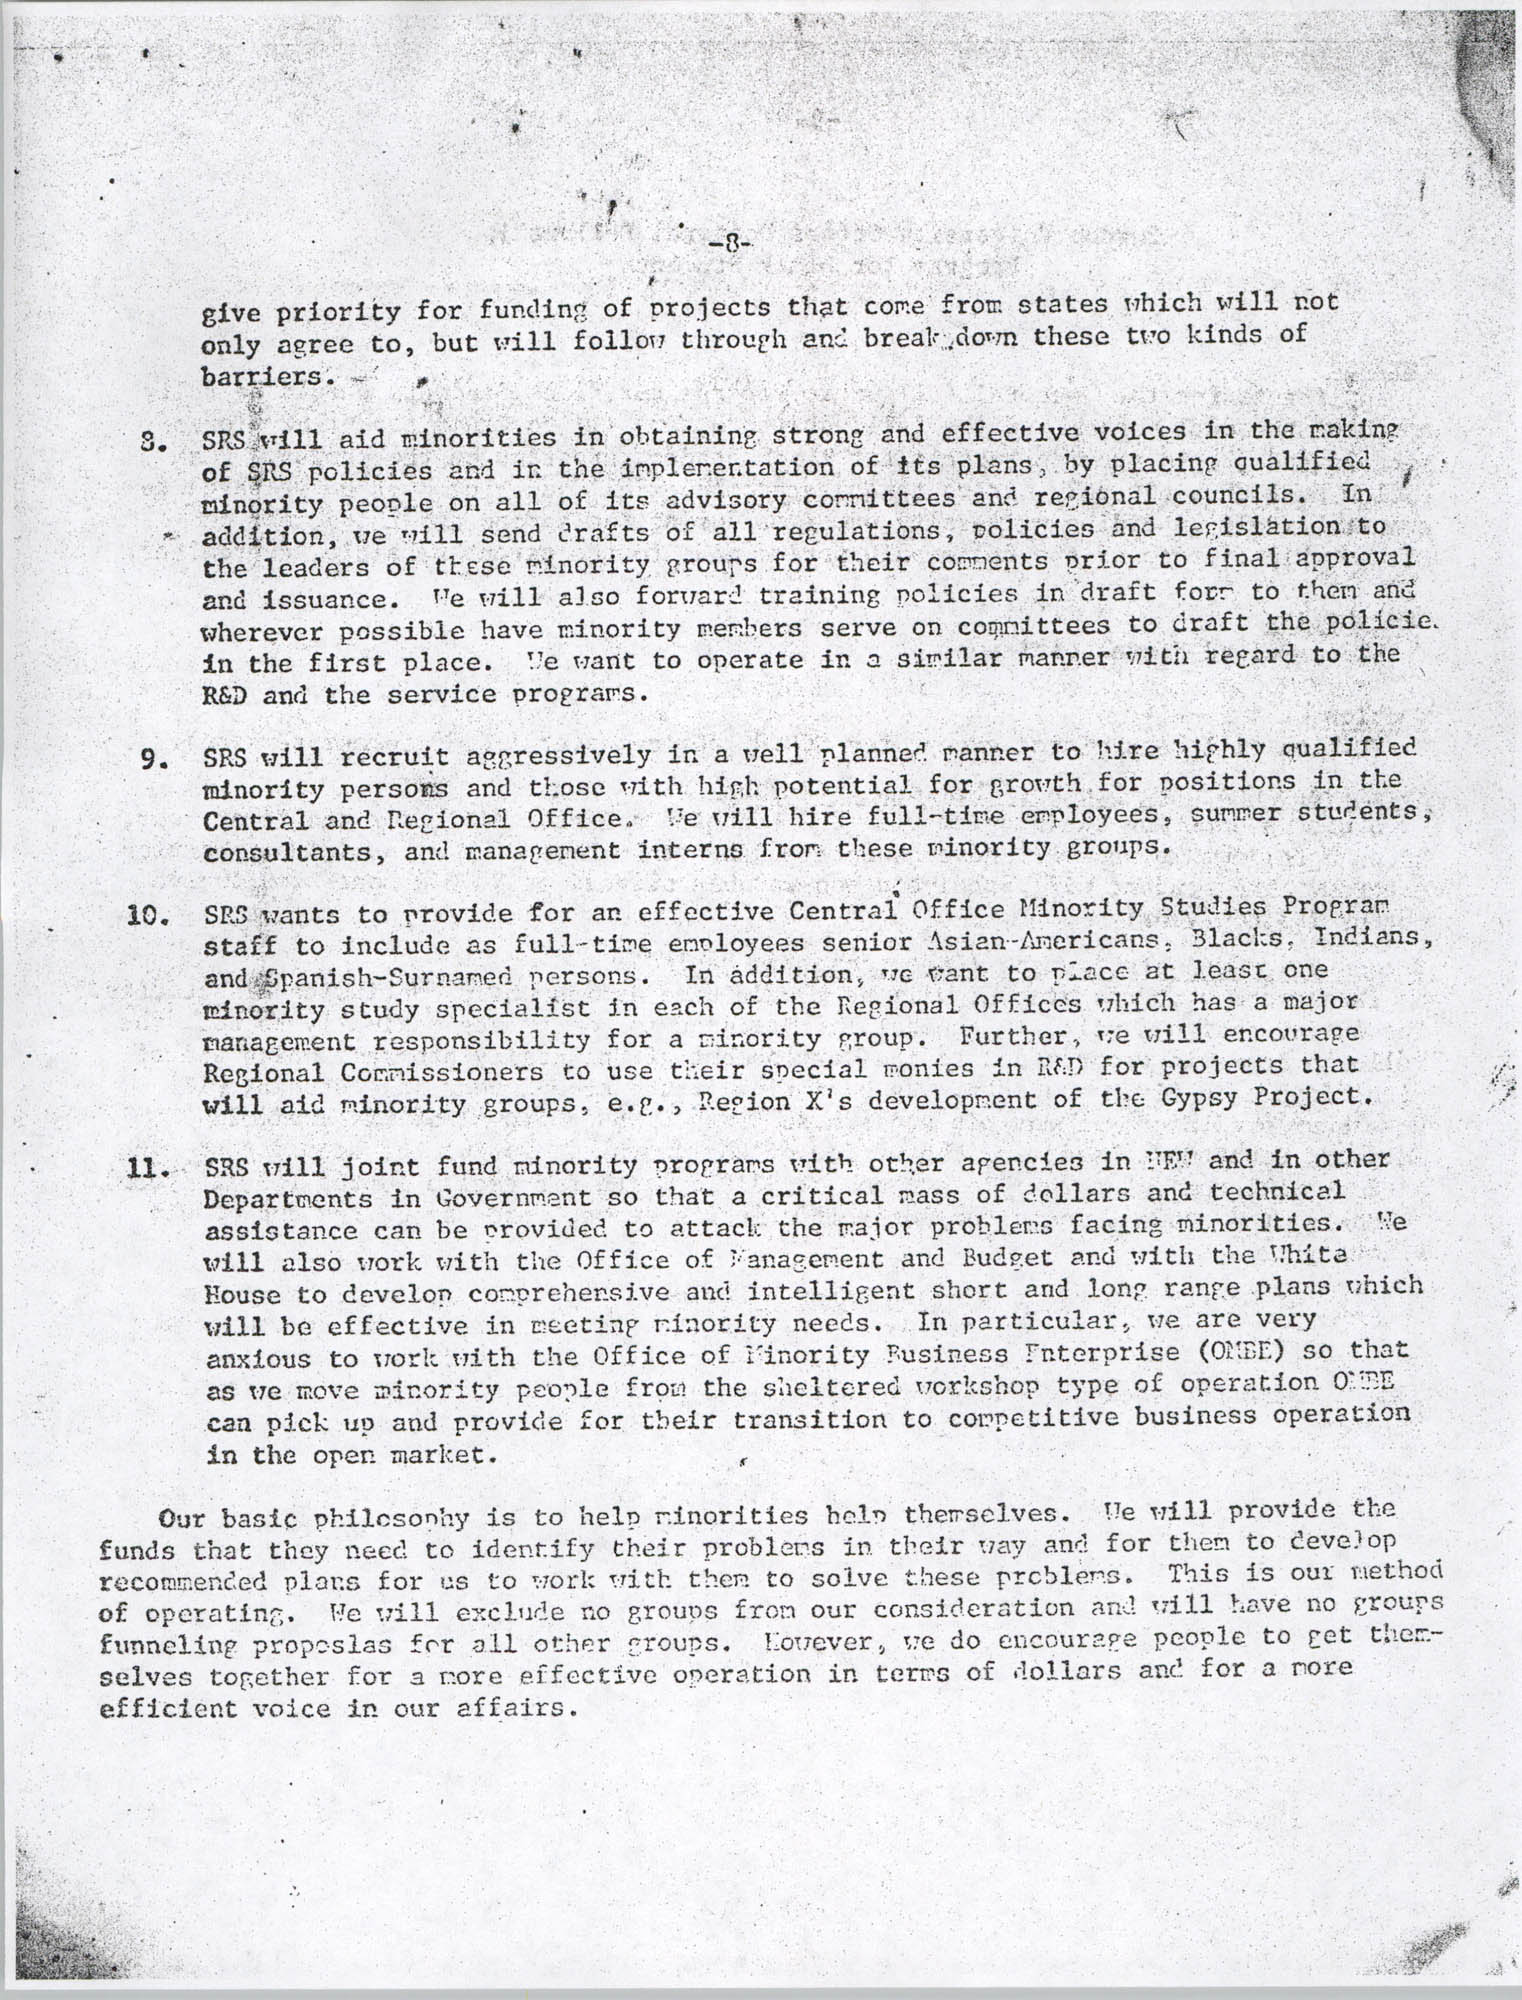 Black Educators Council for Human Services, Volume 1, Number 1, Page 8